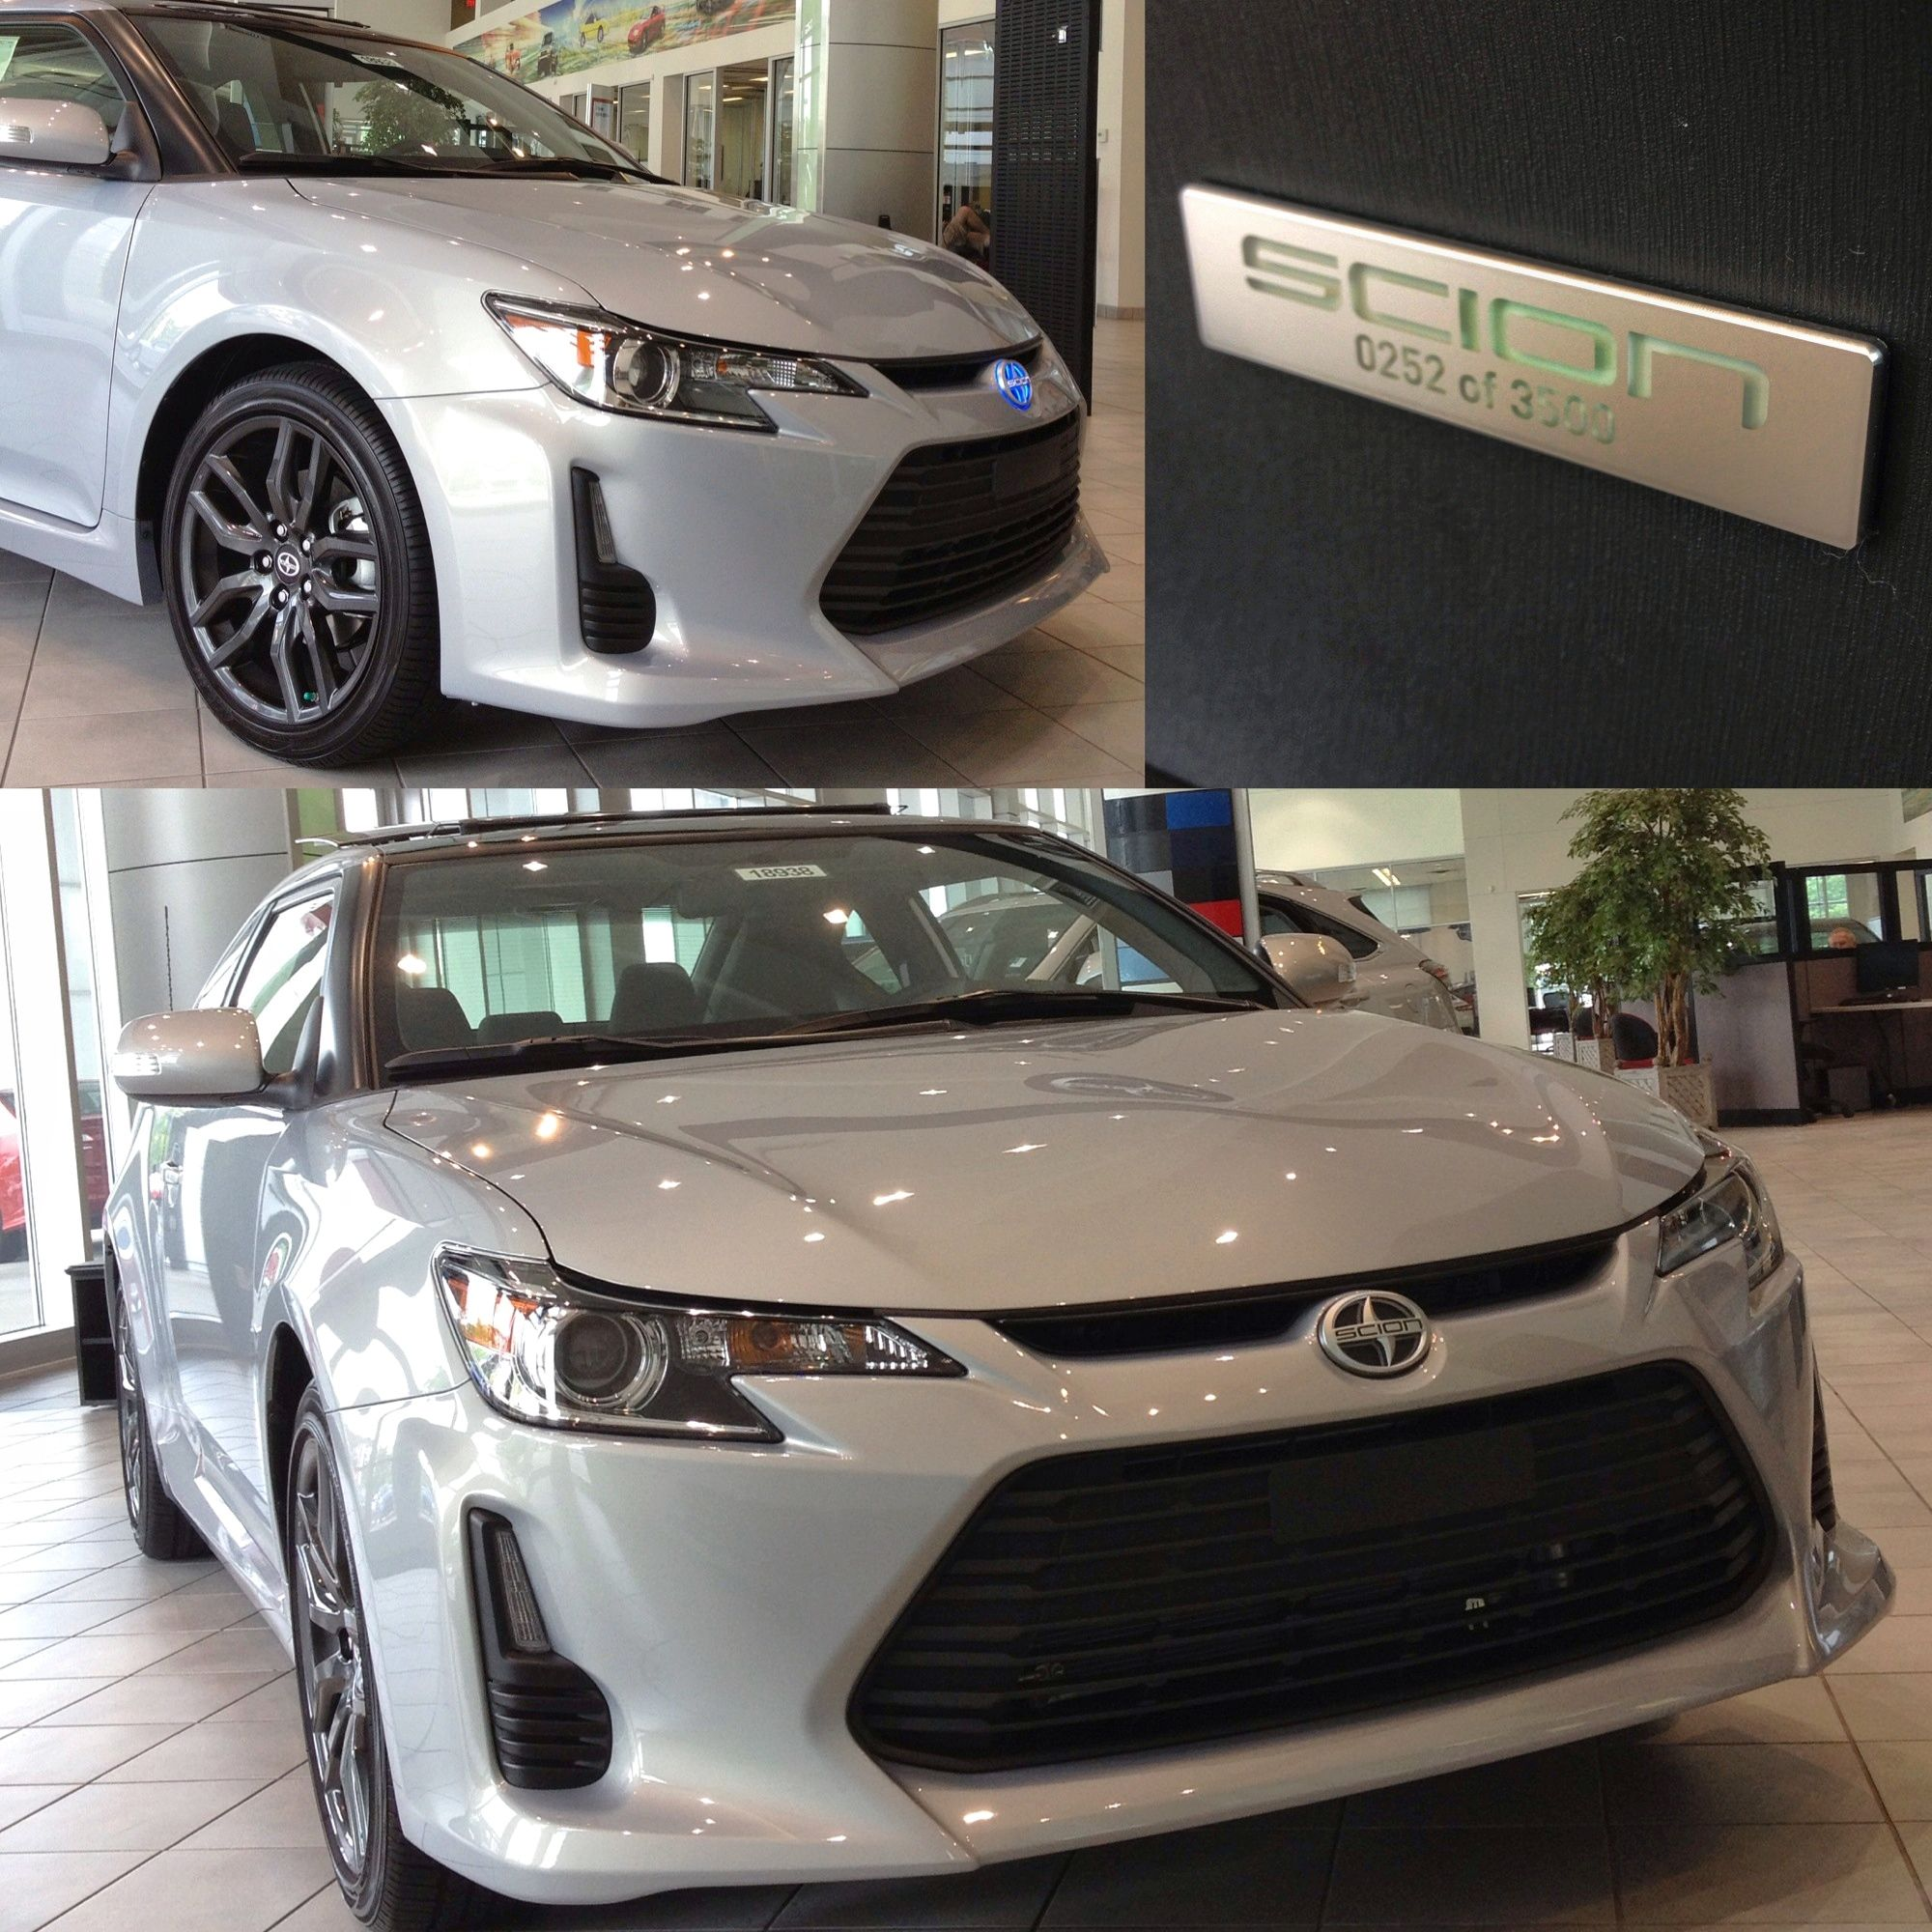 Toyota Of New Bern >> 2014 Scion 10 Tc In Silver Ignition 252 In Area Code 252